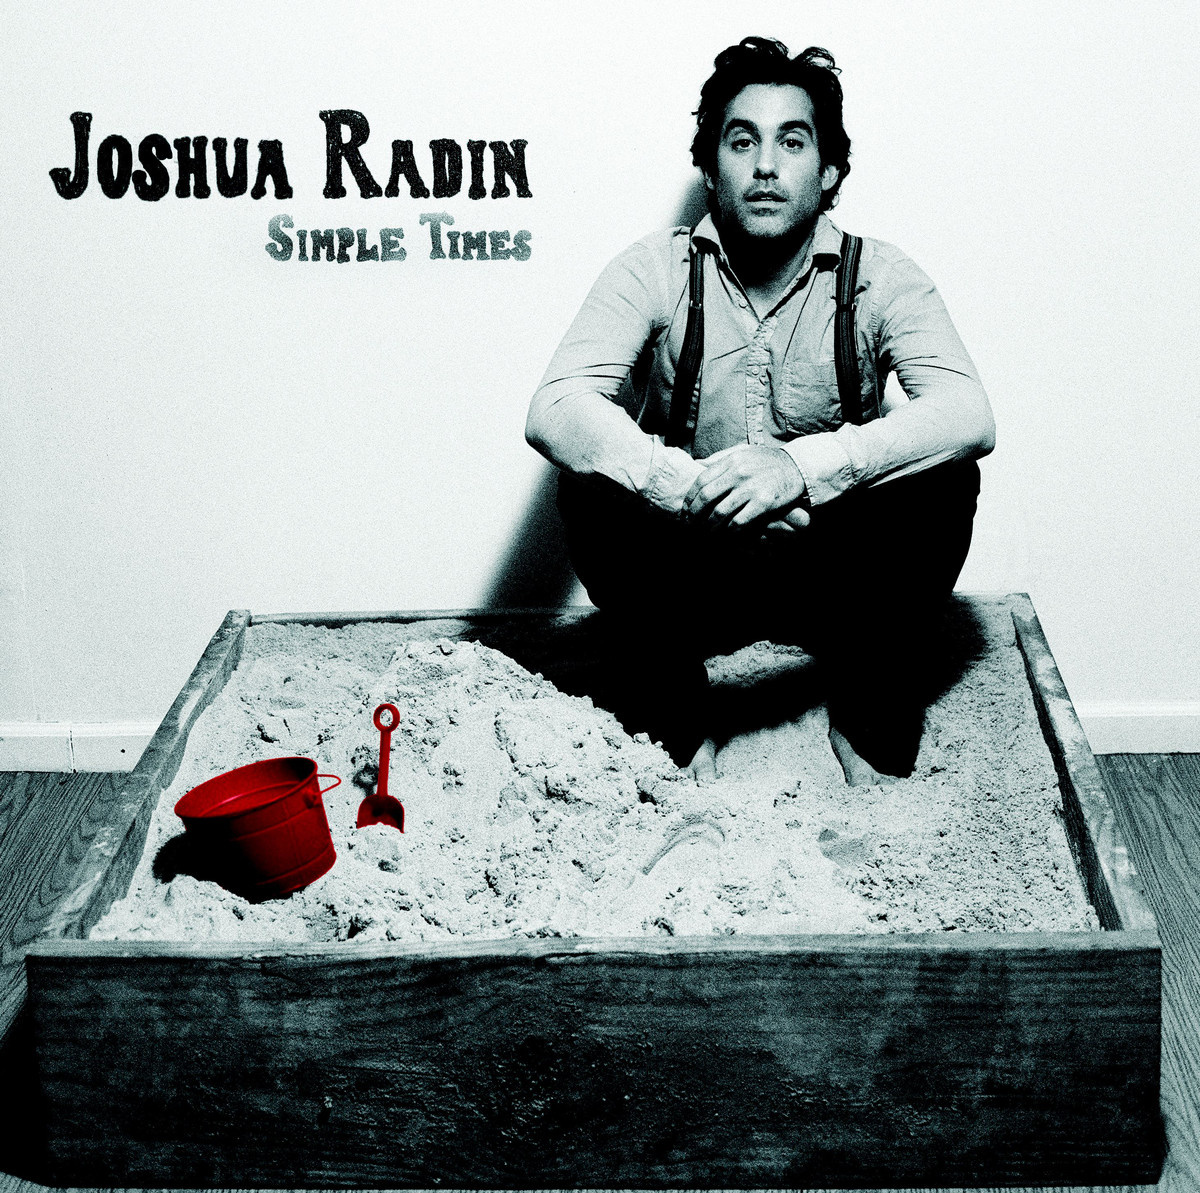 I'd Rather Be With You – Joshua Radin 选自《Simple Times》专辑